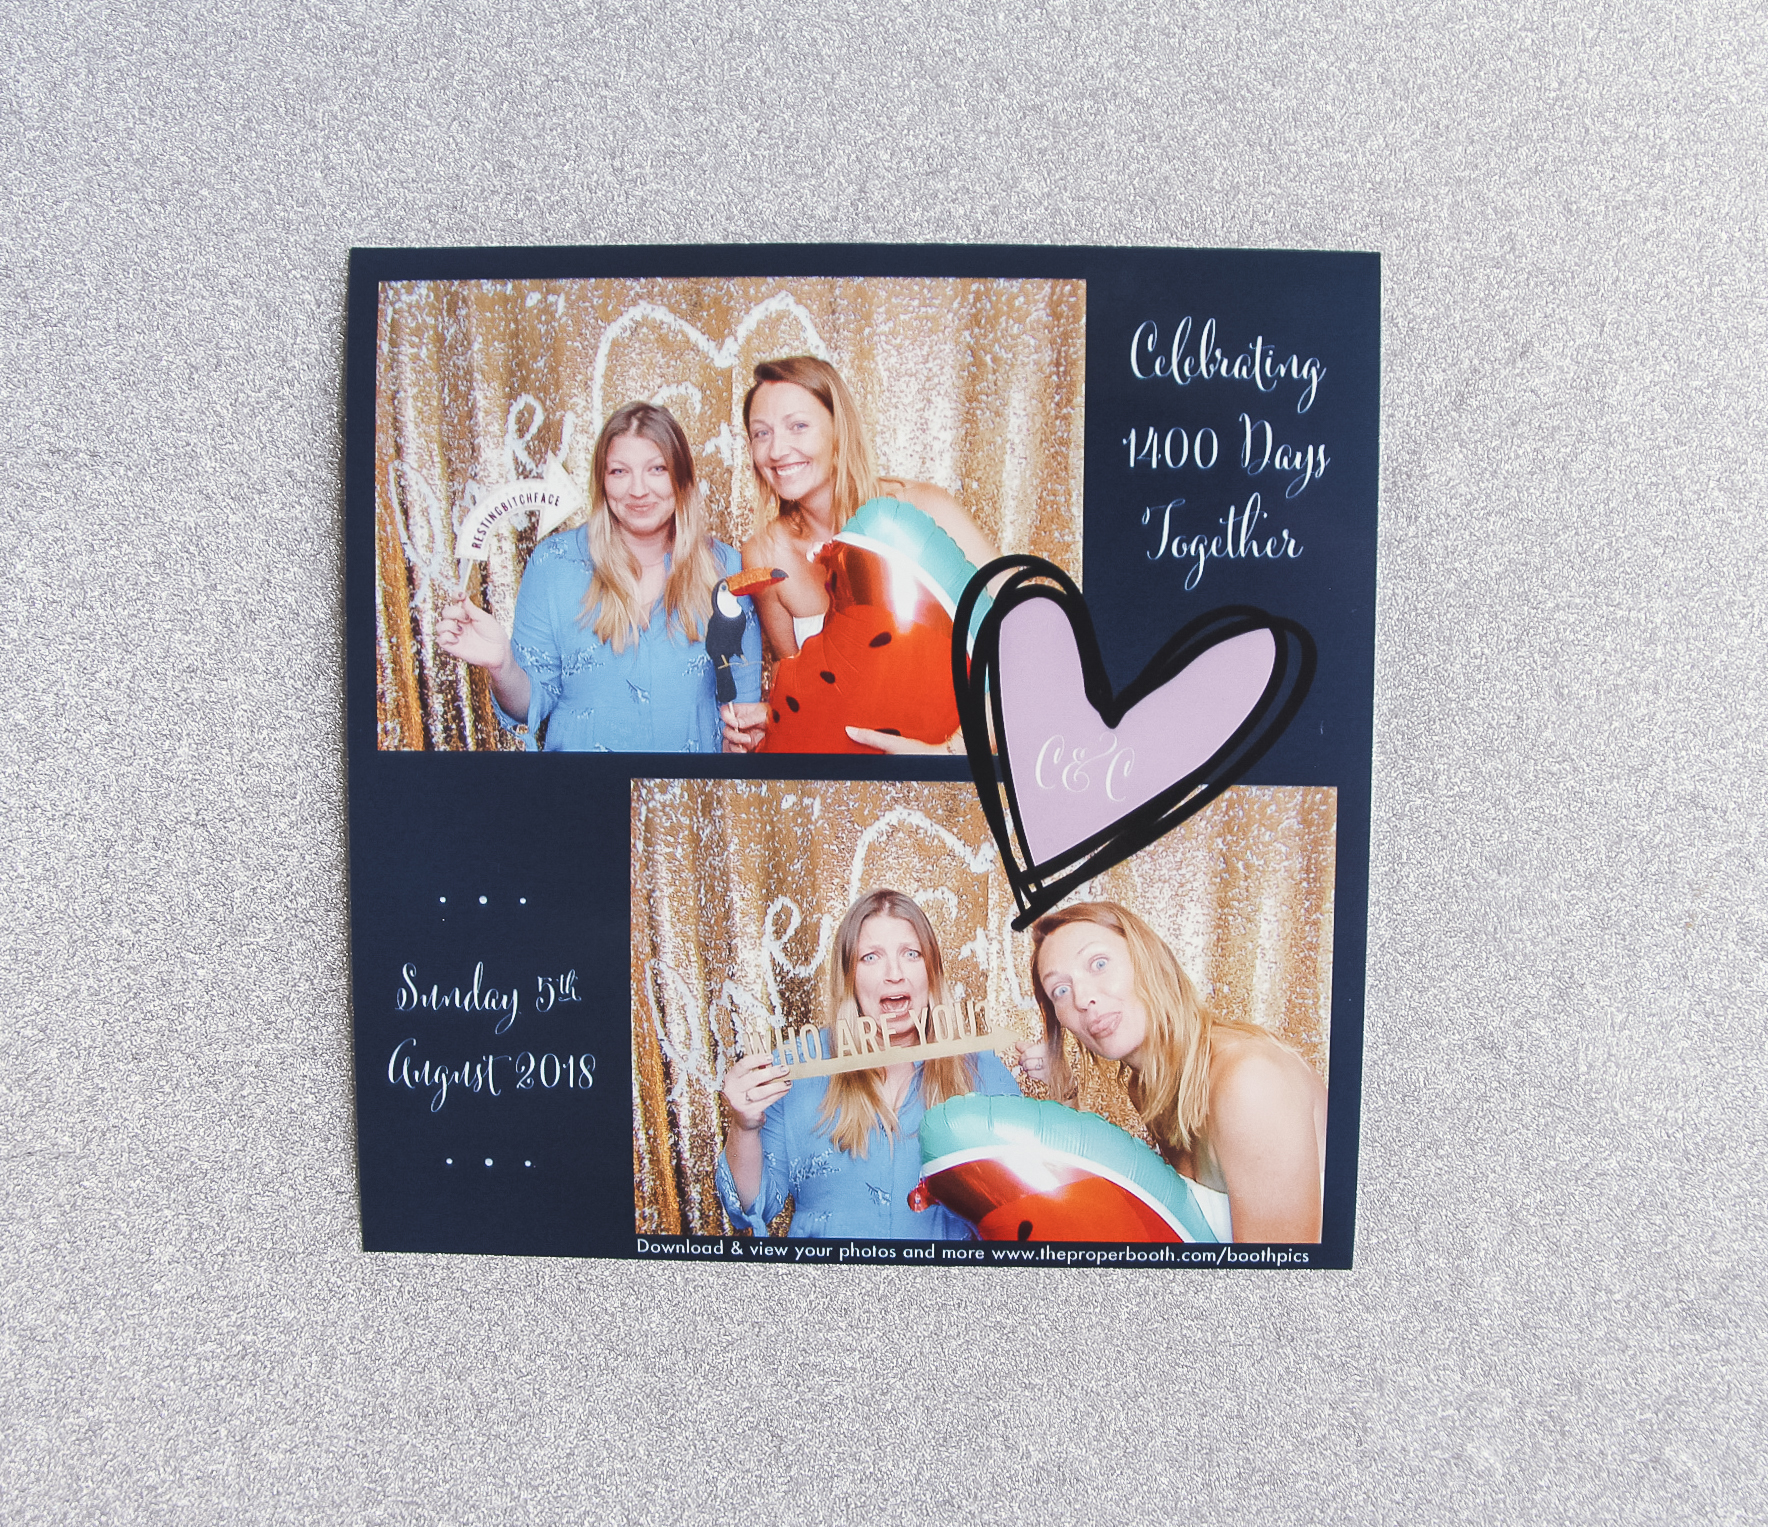 The Proper Booth Print Out Example-9.jpg